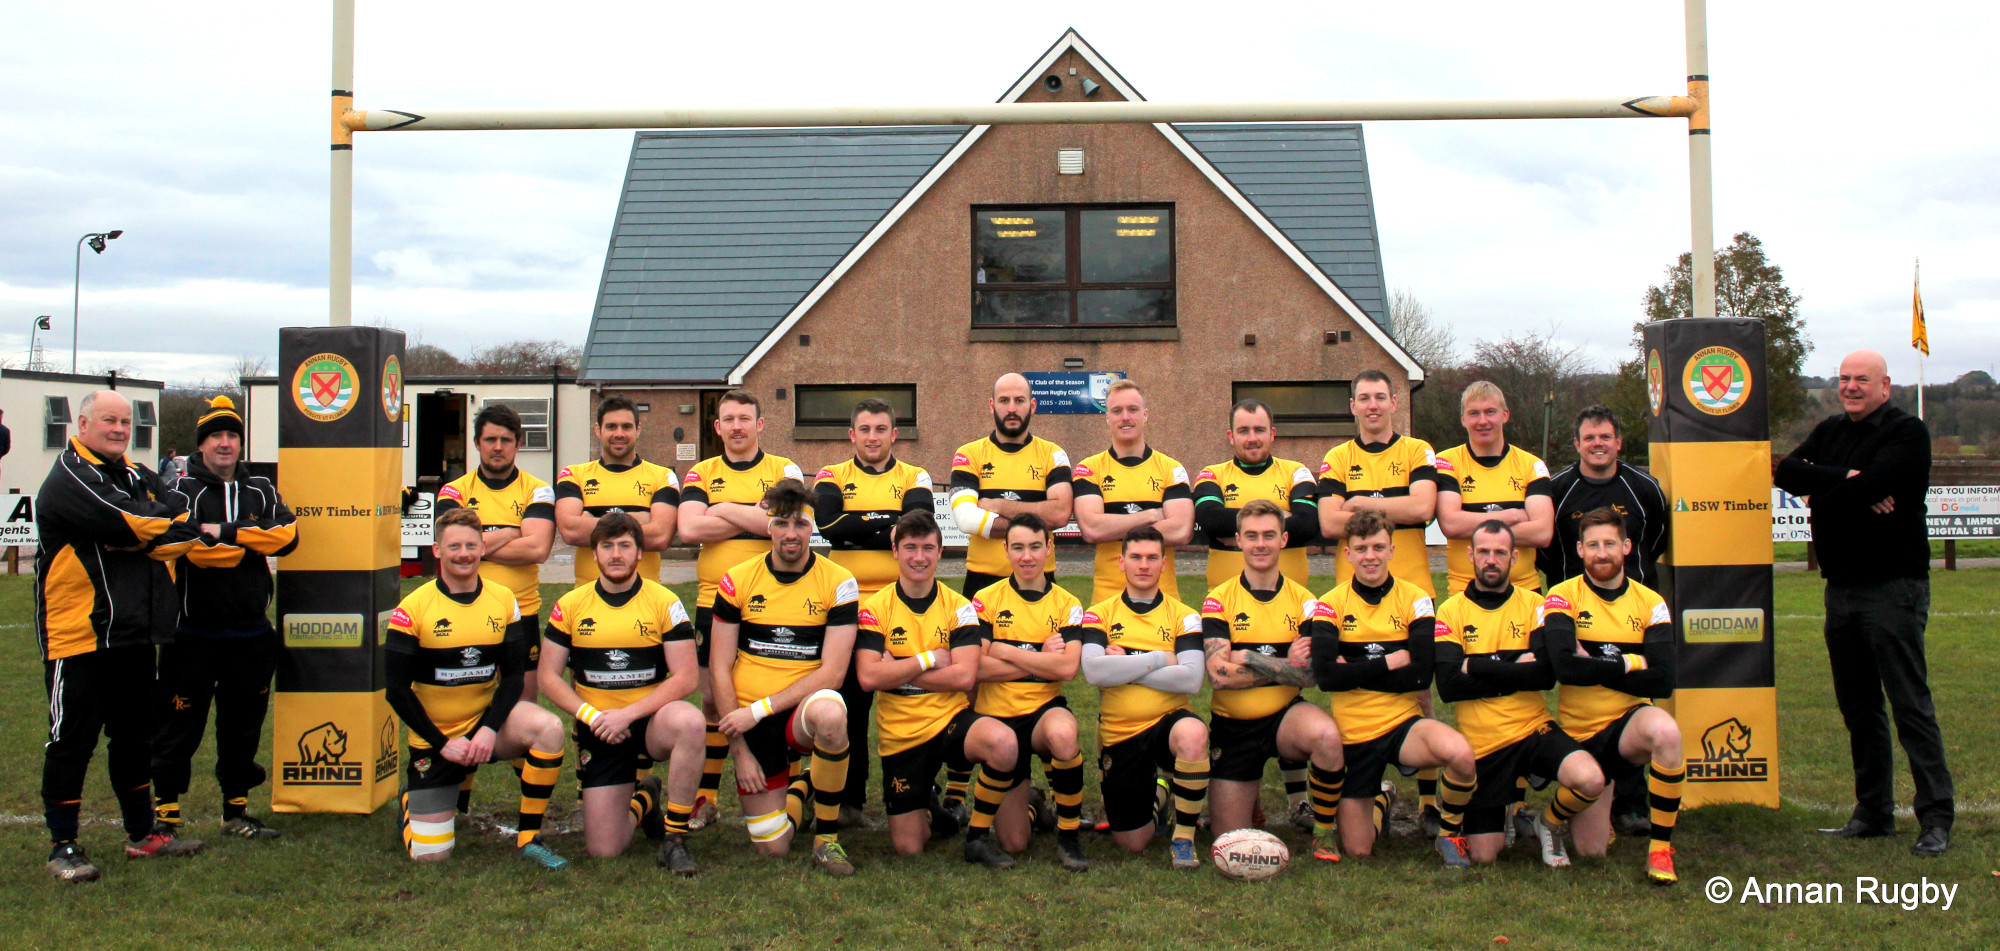 1st XV before the match